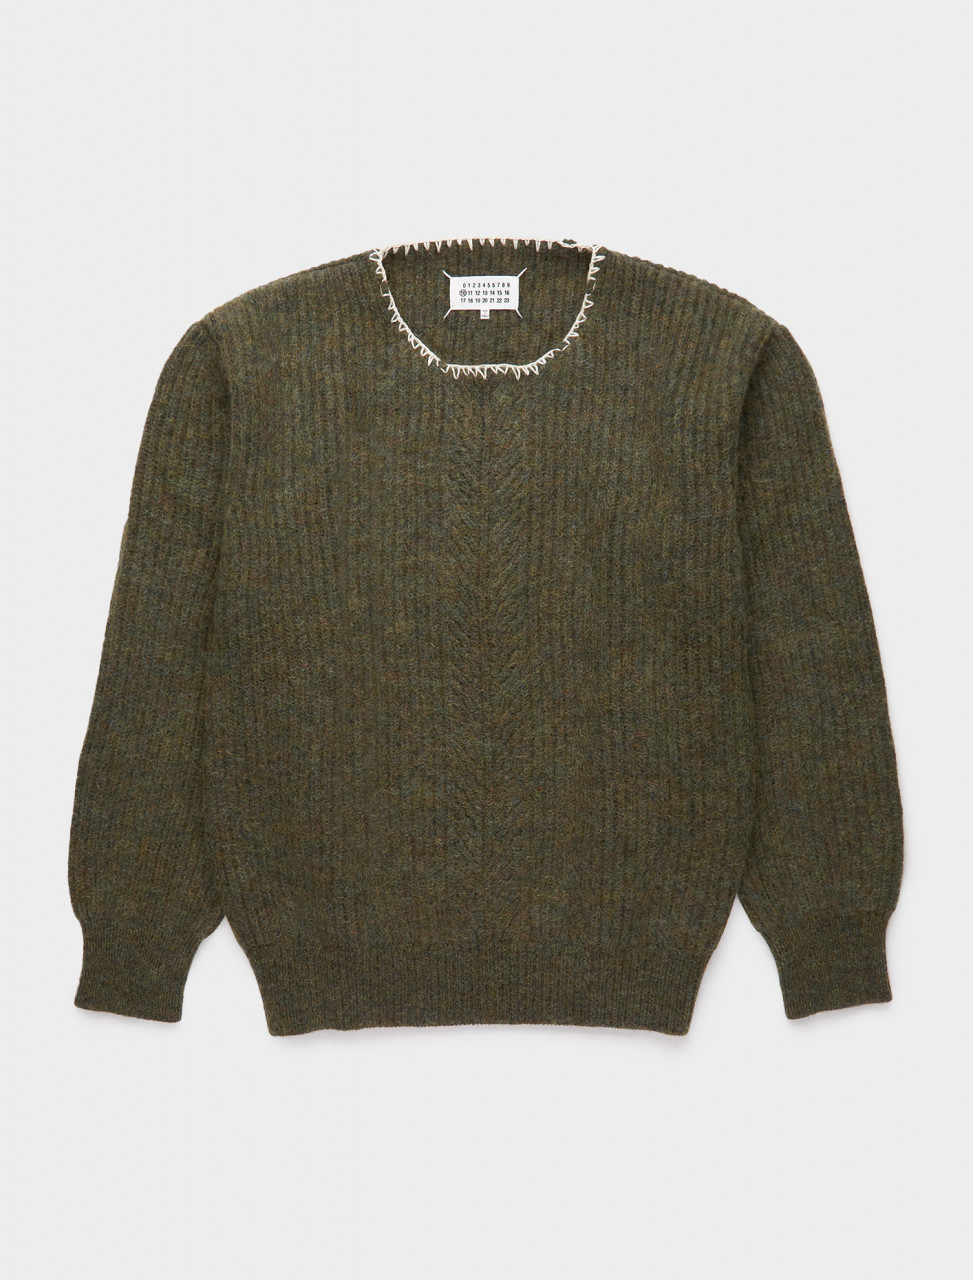 256-S30GP0320-S17443-693F MAISON MARGIELA WOOL MOHAIR SWEATER OLIVE